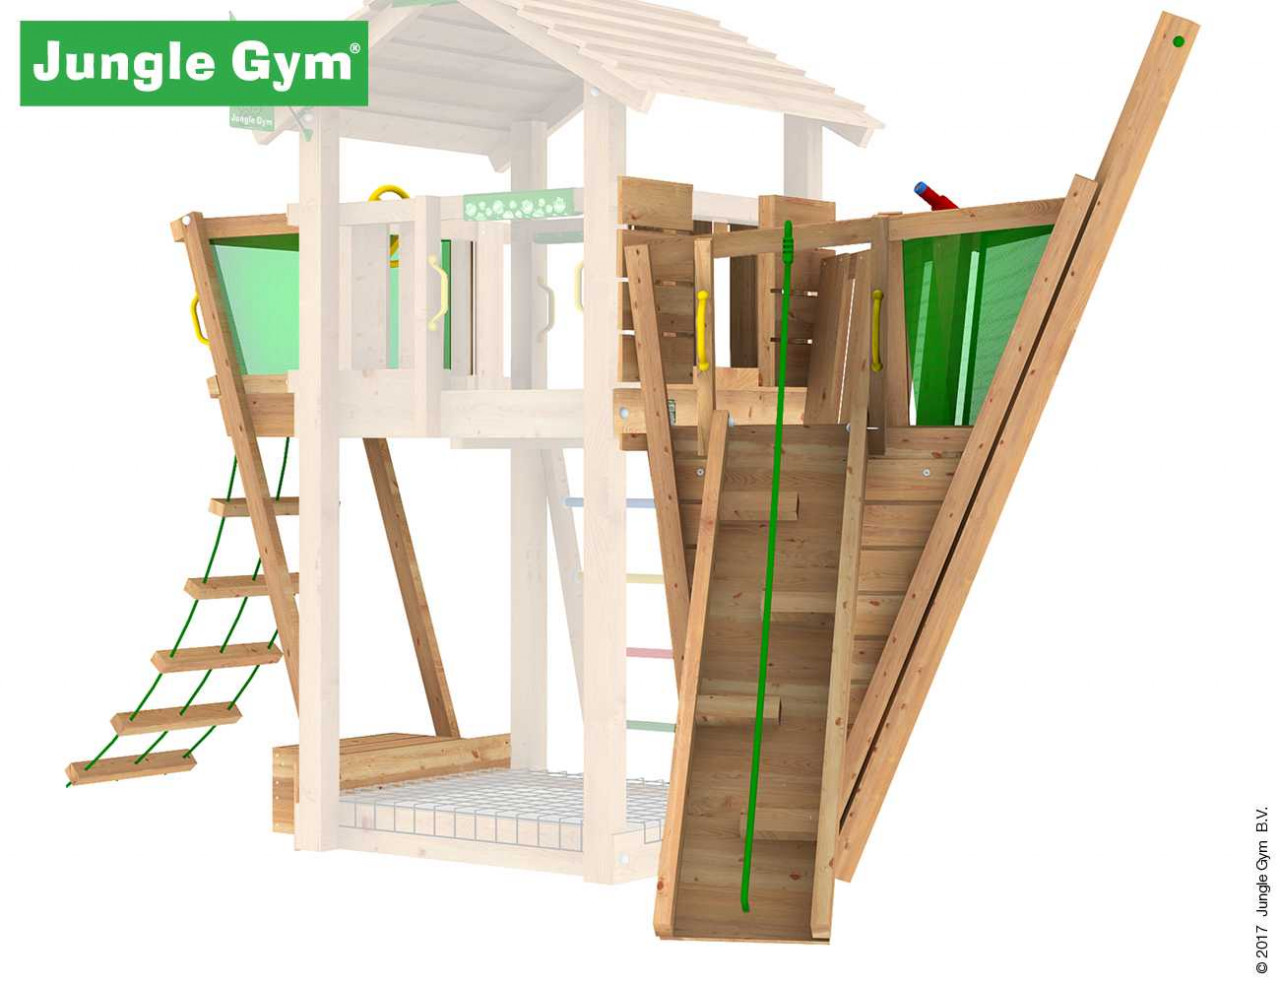 Jungle Gym Boat-Modul